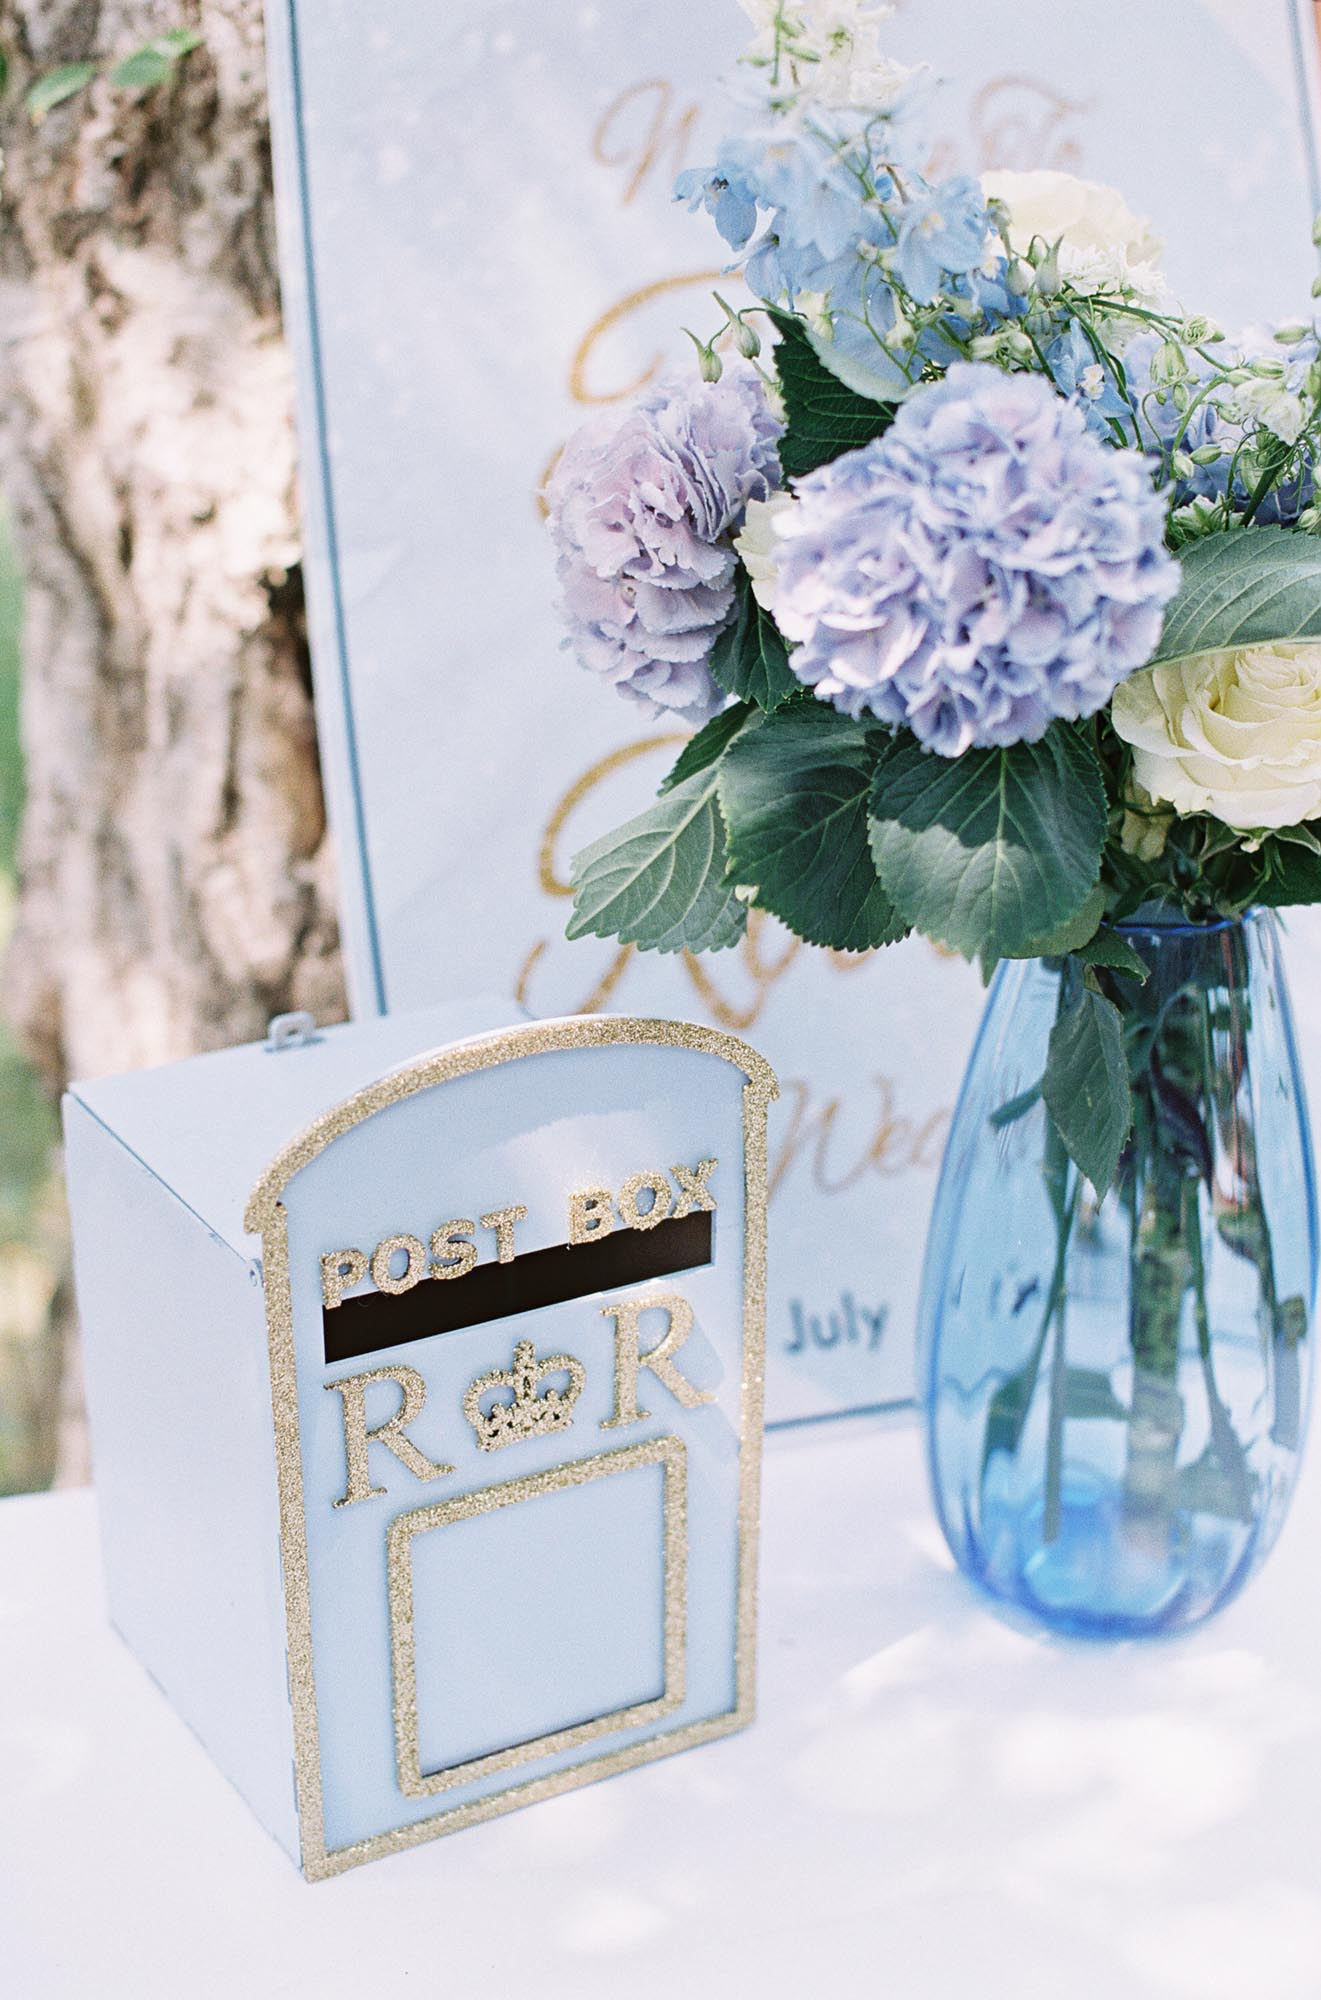 Wedding card postbox and hydrangeas at Chiddingstone Castle wedding